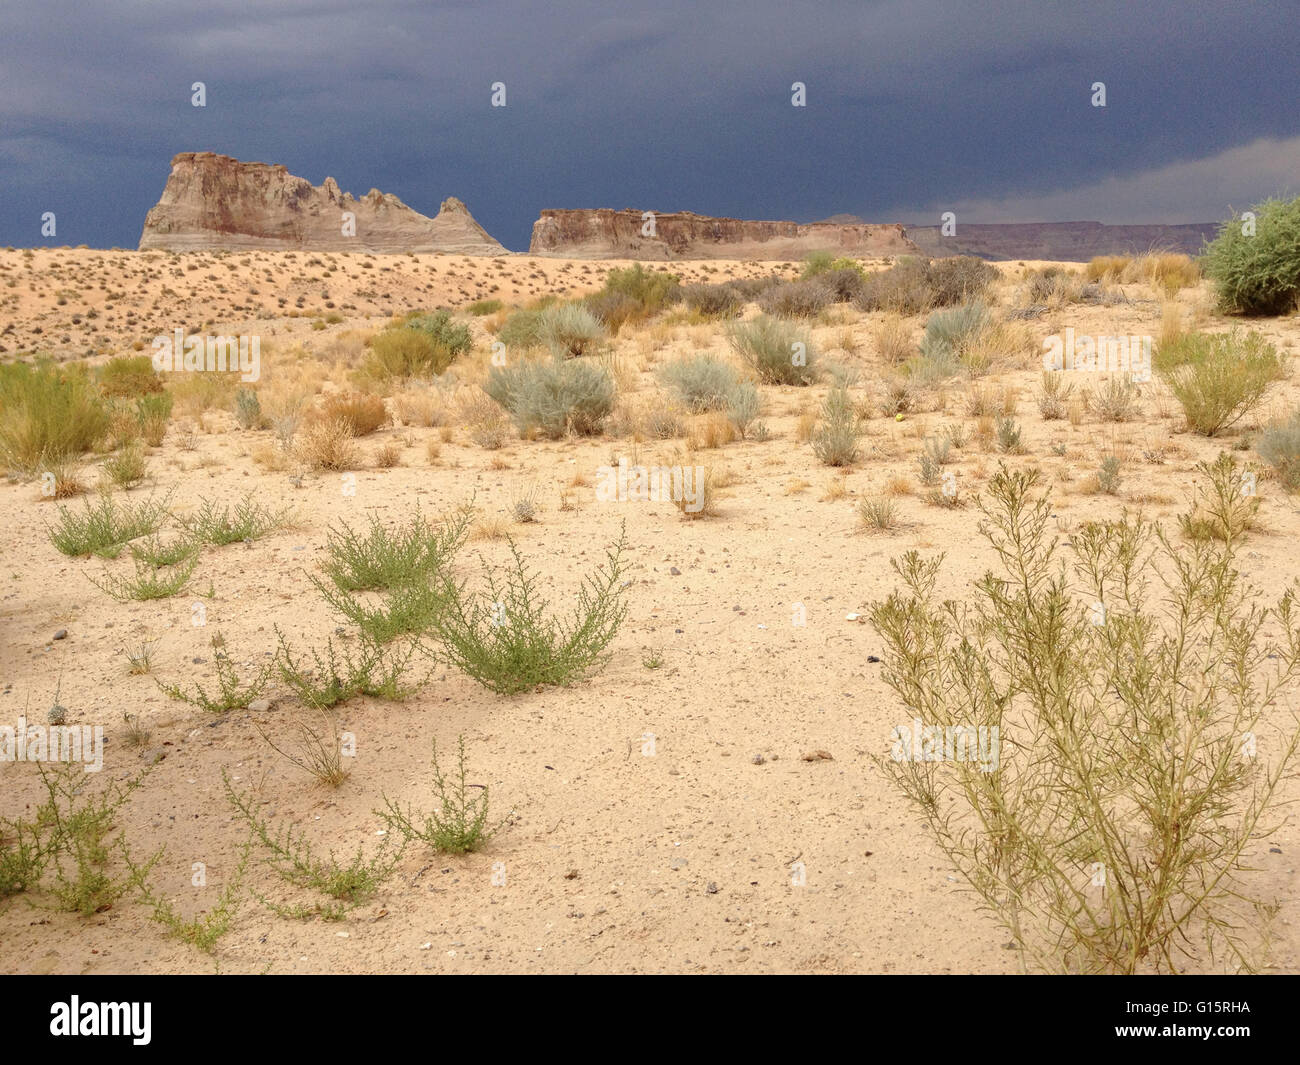 sandy foreground with sparsely populated plants, mountains and dark sky in background - Stock Image